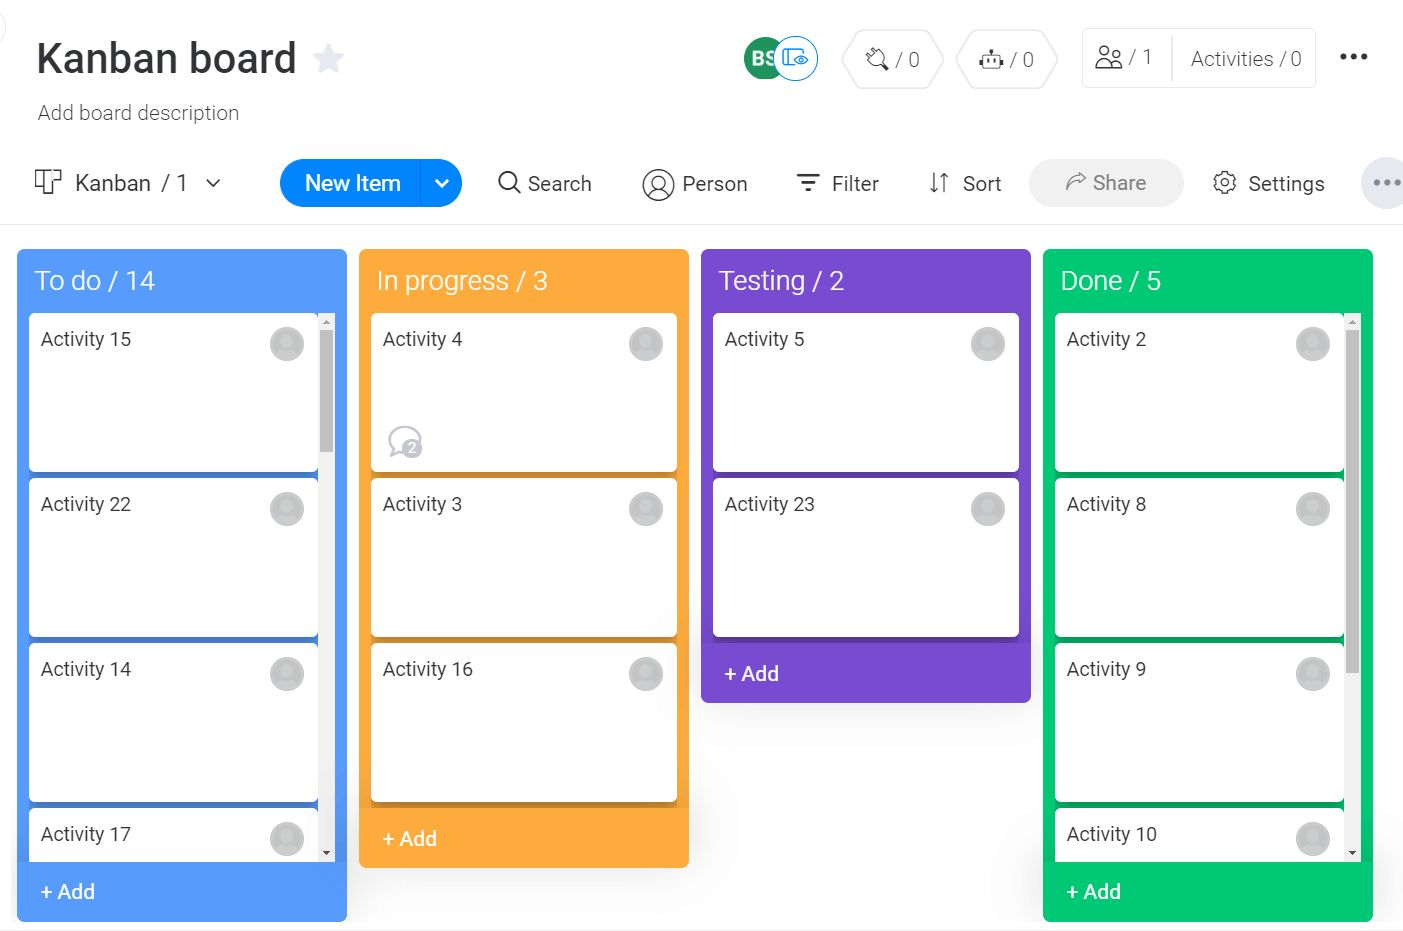 Screenshot of a kanban board in monday UI